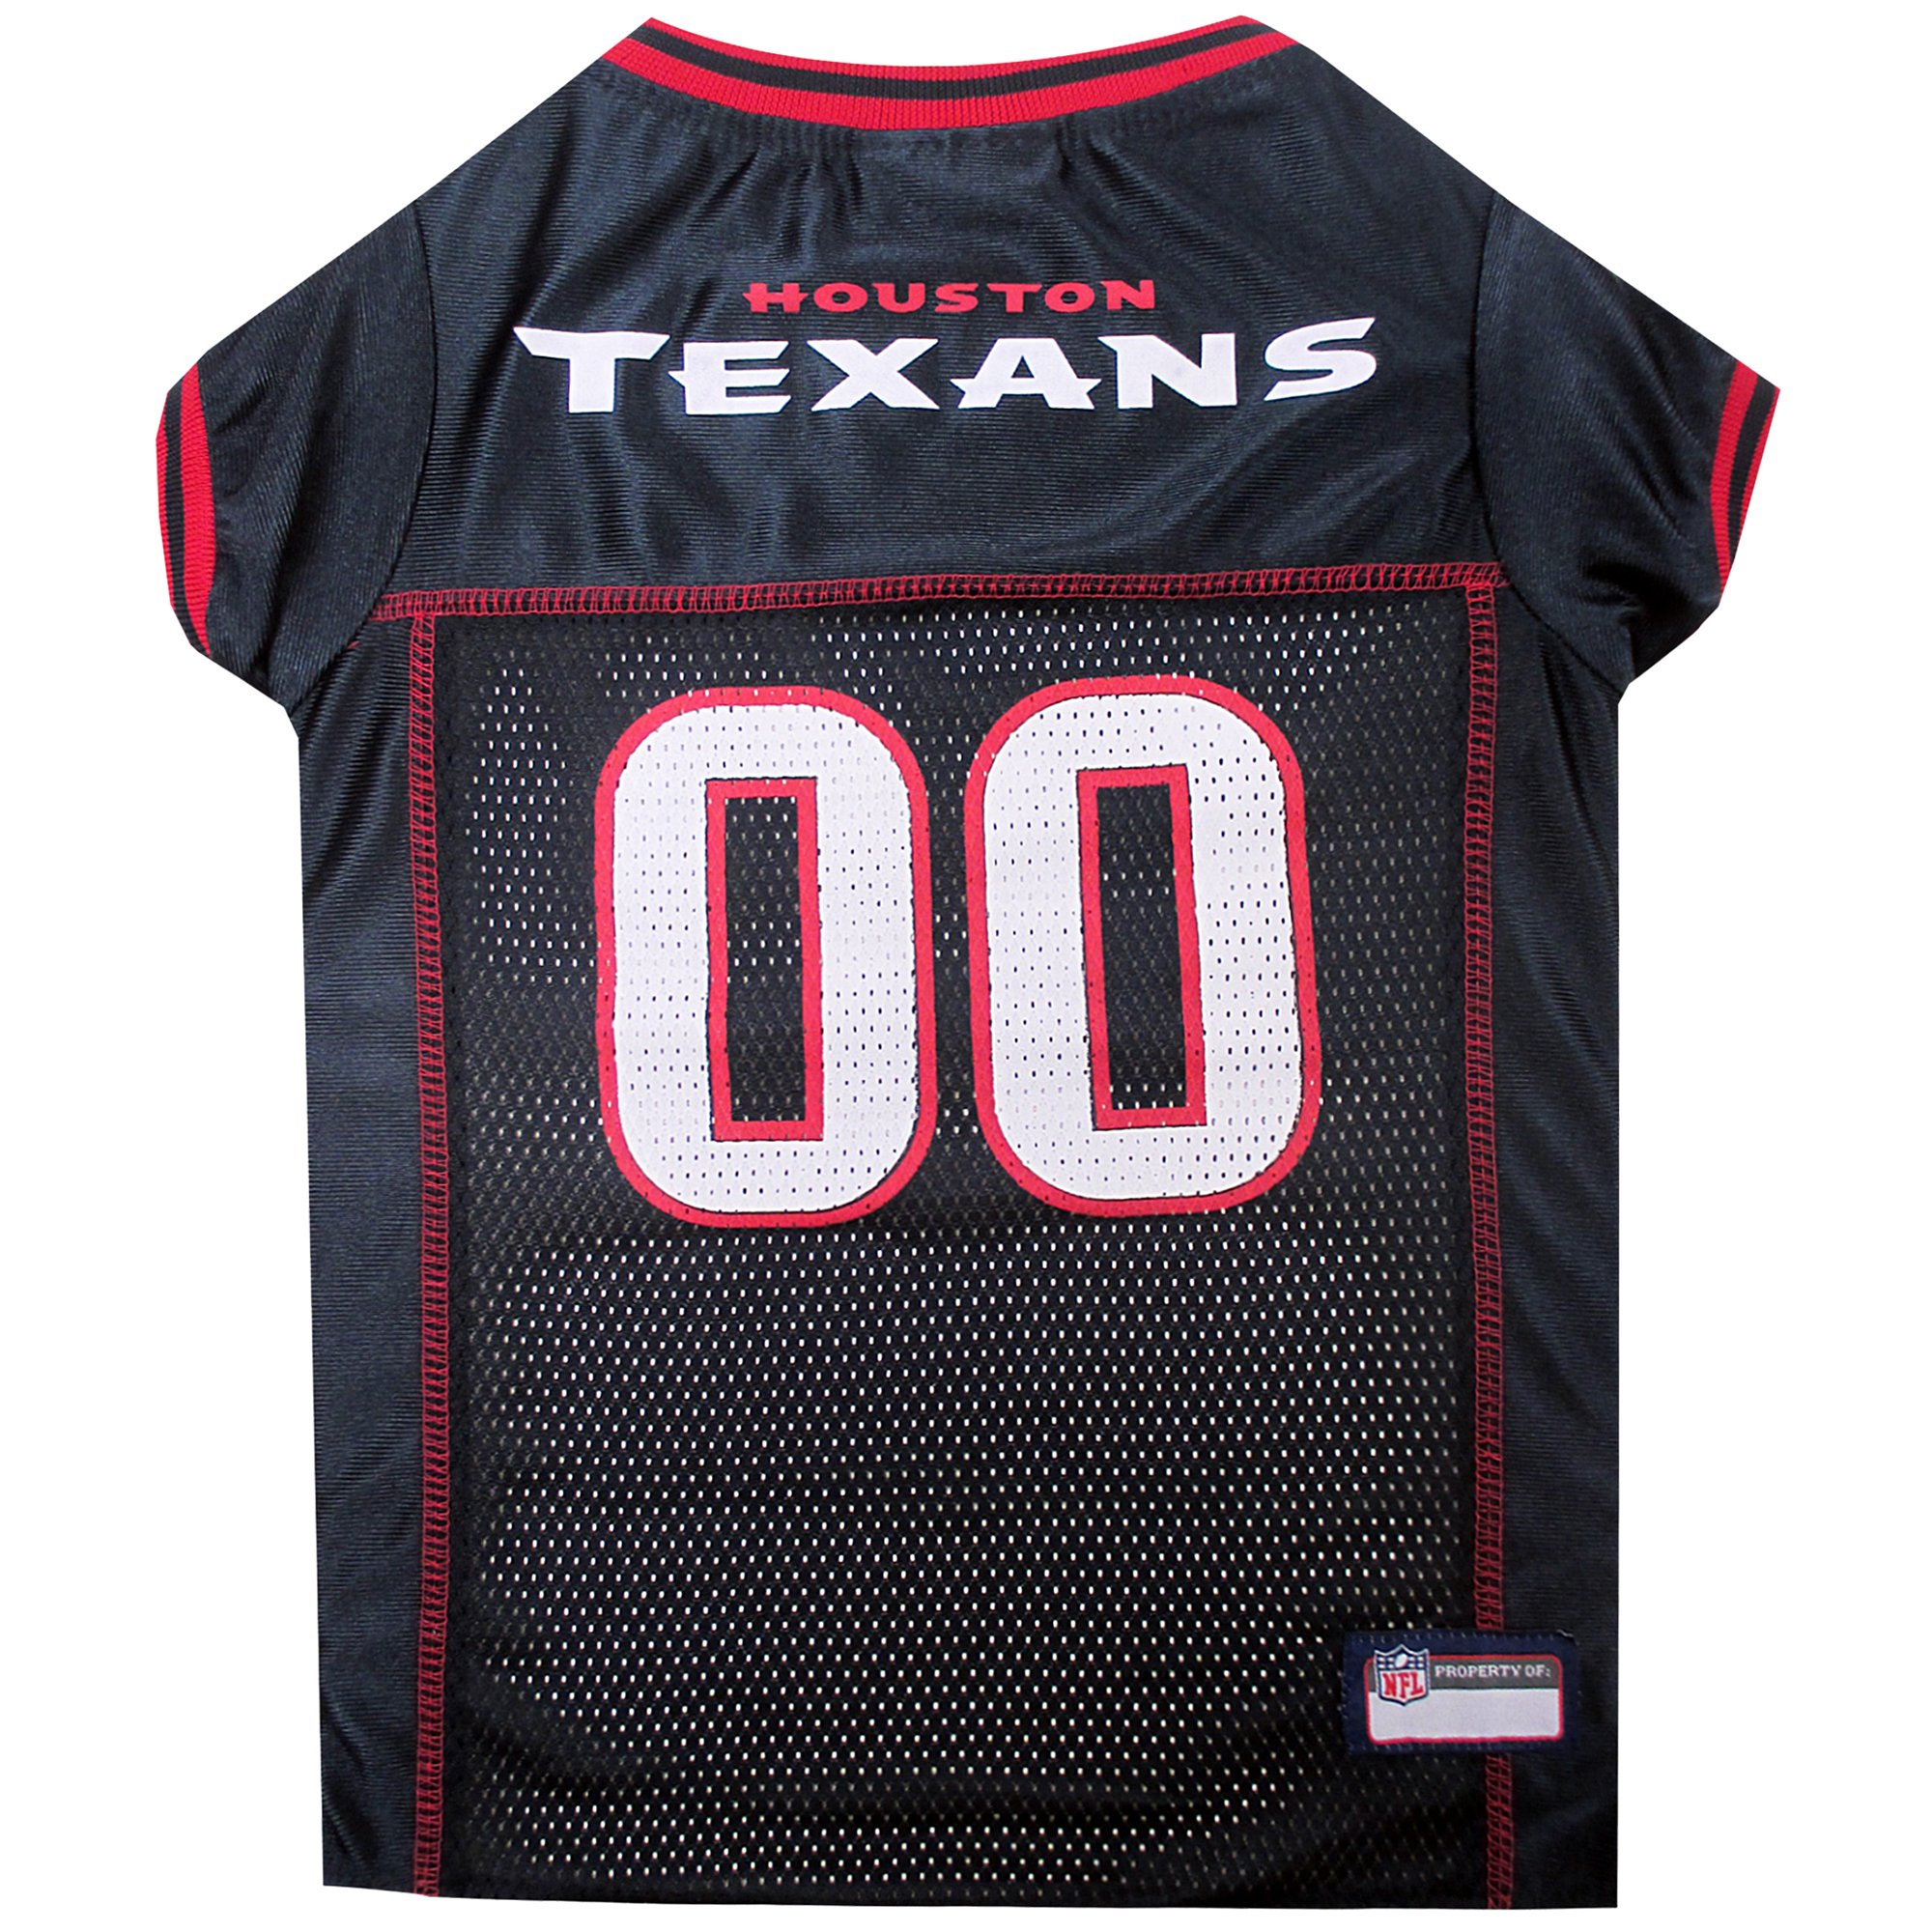 innovative design a668f f5dc5 Pets First Houston Texans NFL Mesh Pet Jersey, X-Small | Petco